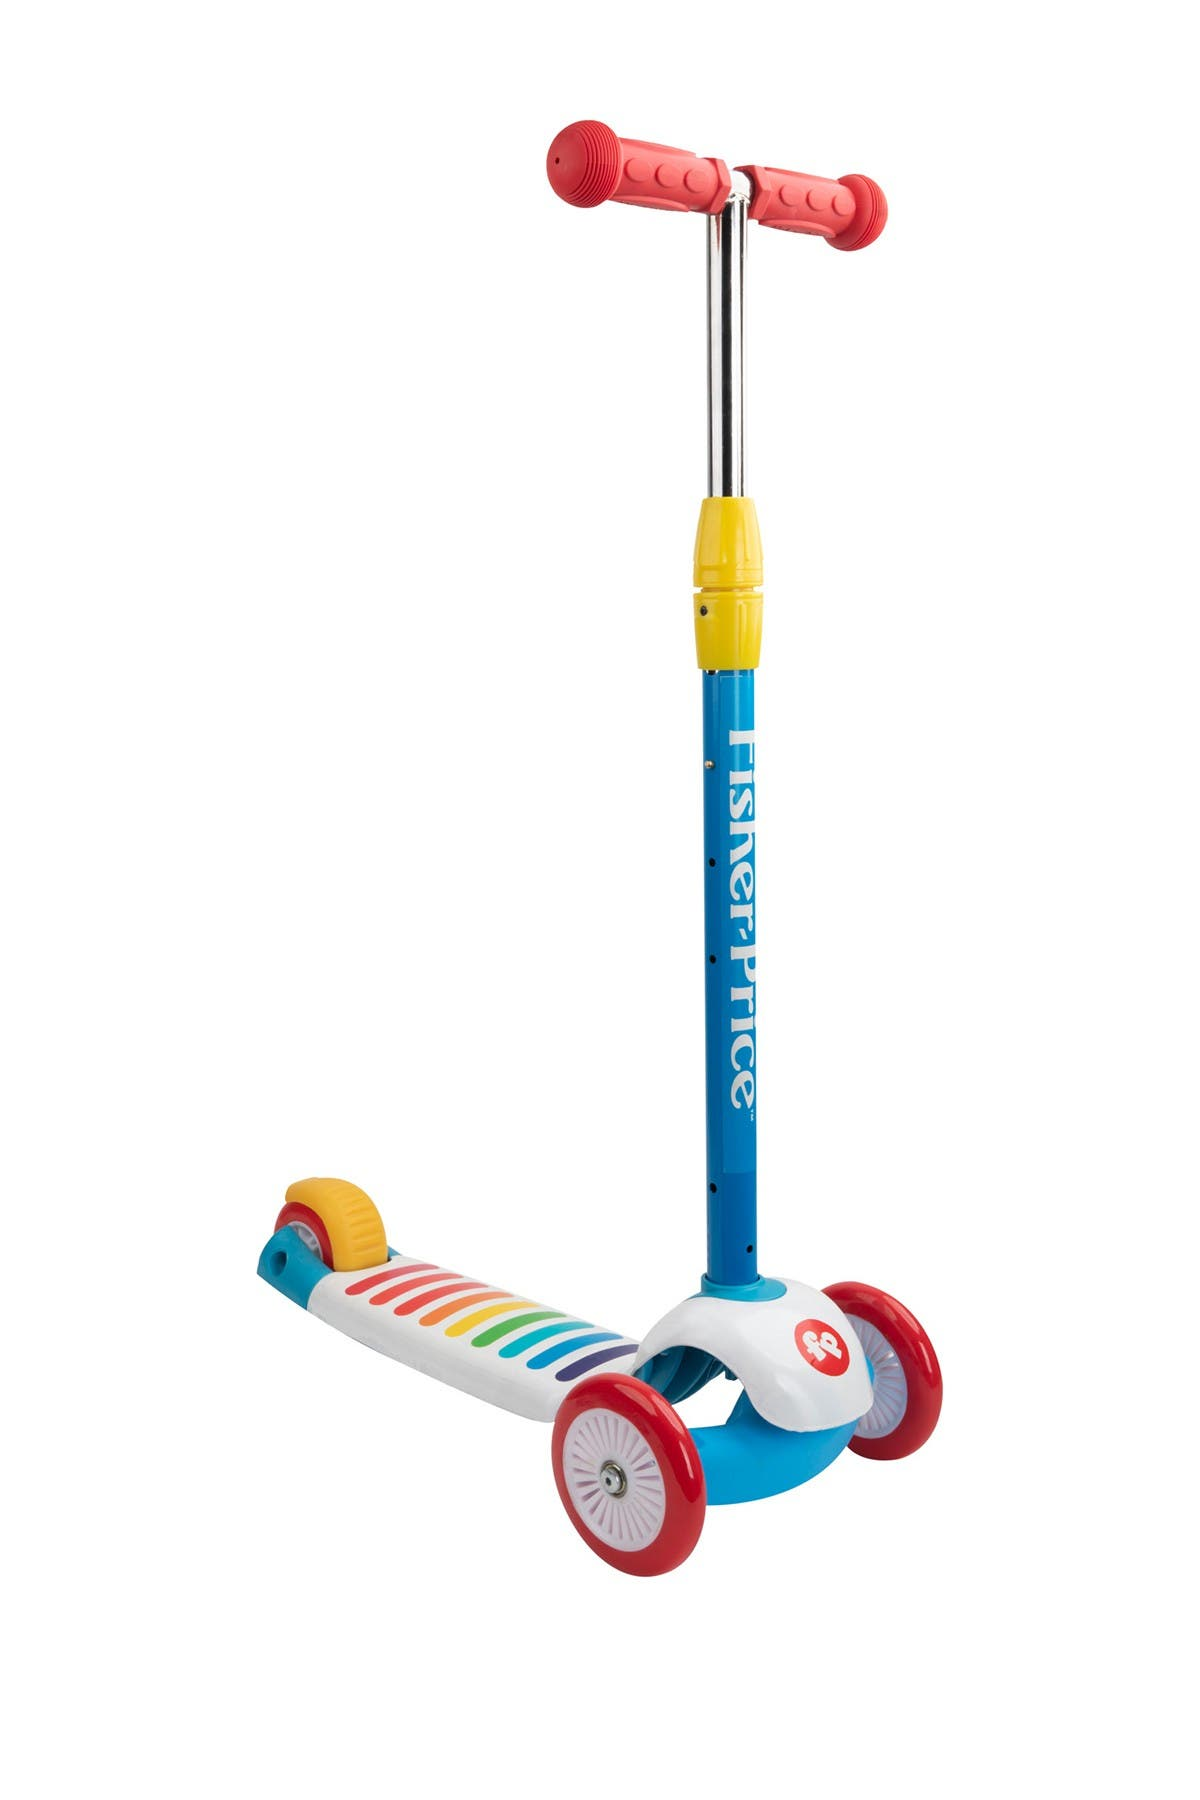 Image of VIVITAR Xylophone Scooter